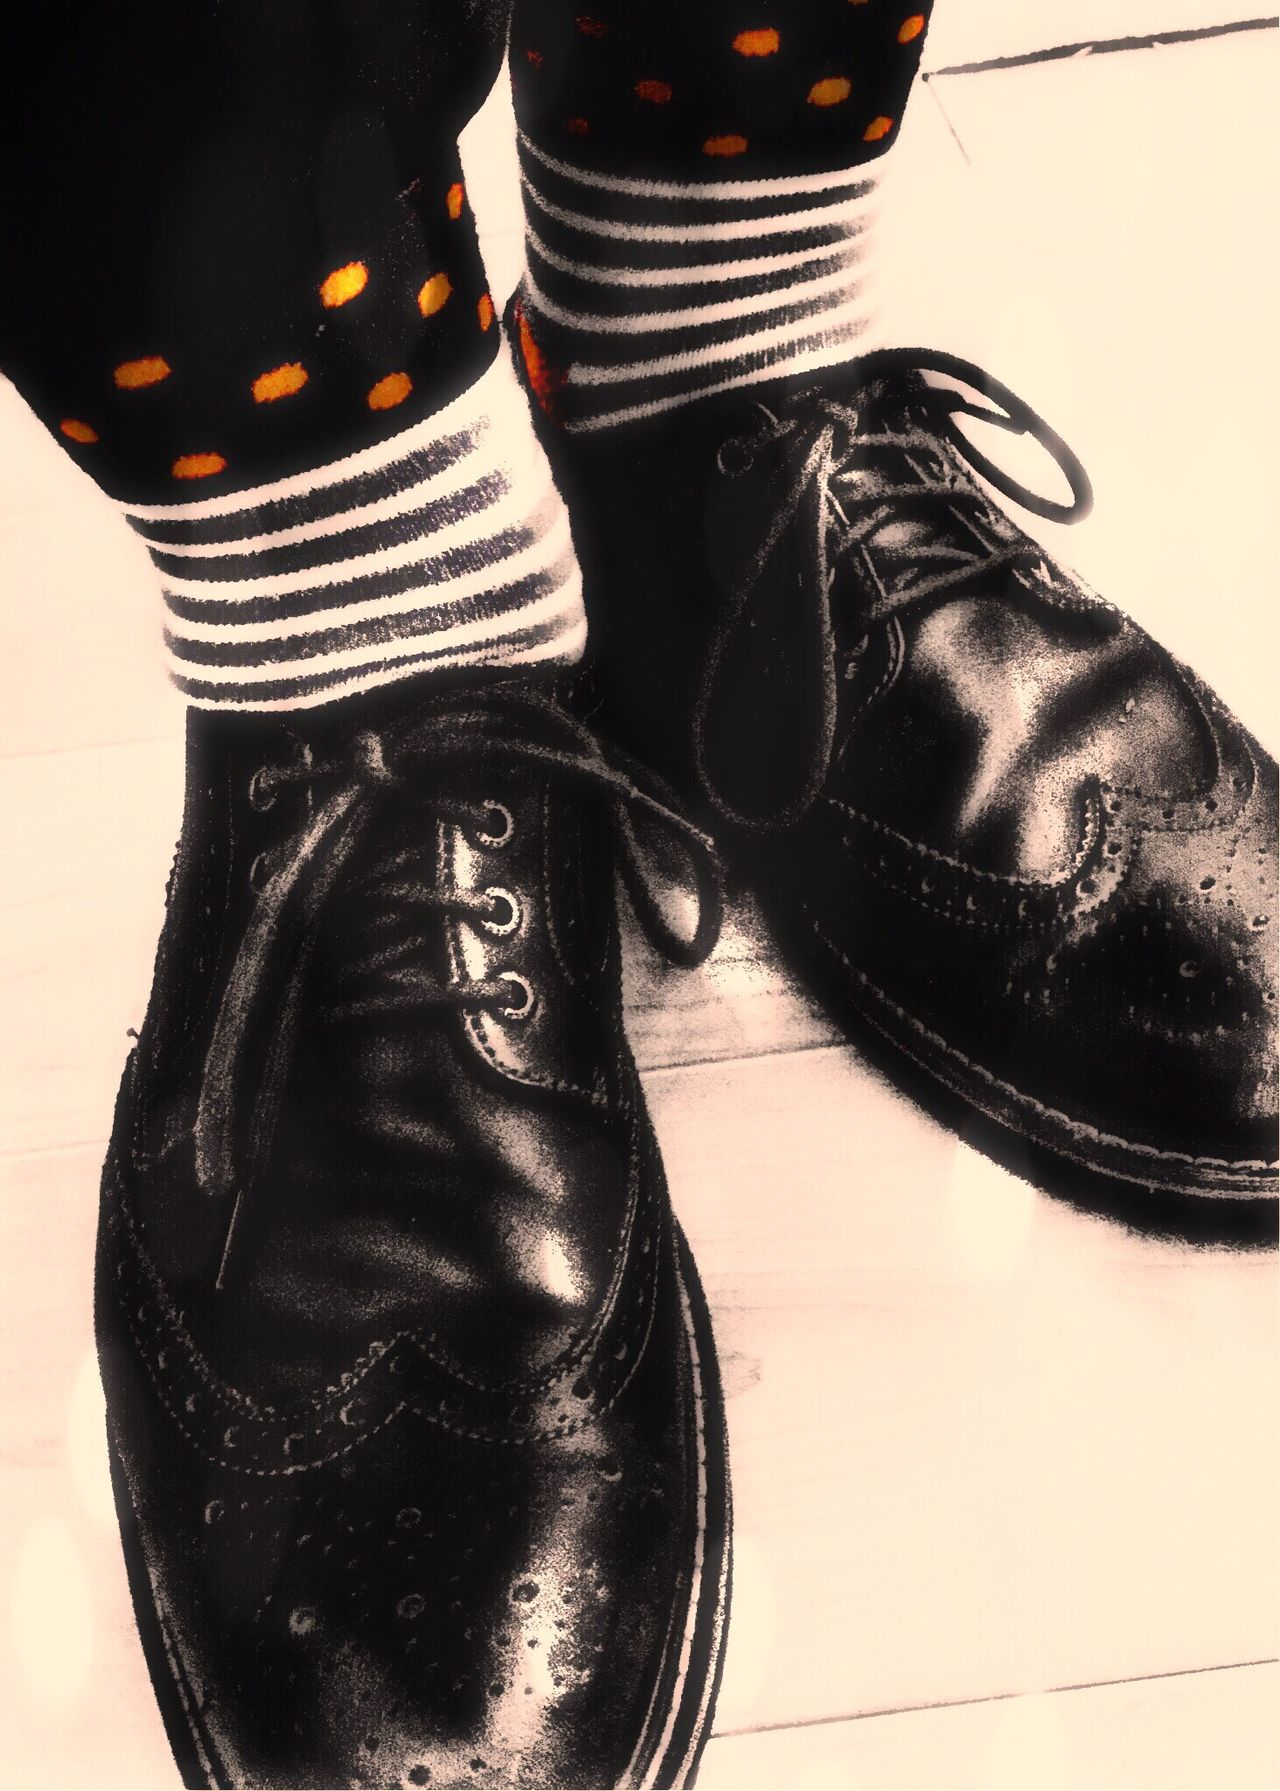 Wingtips Shoes Socks Polkadots Stripes Pattern Shoe Human Leg Human Body Part Real People Low Section Close-up One Person TK Maxx Socksie Men Pair Day Standing Goofing Off Eclectic Sharp Dressed Ankles Reveal Revealing Leather Shoes Dress Shoes